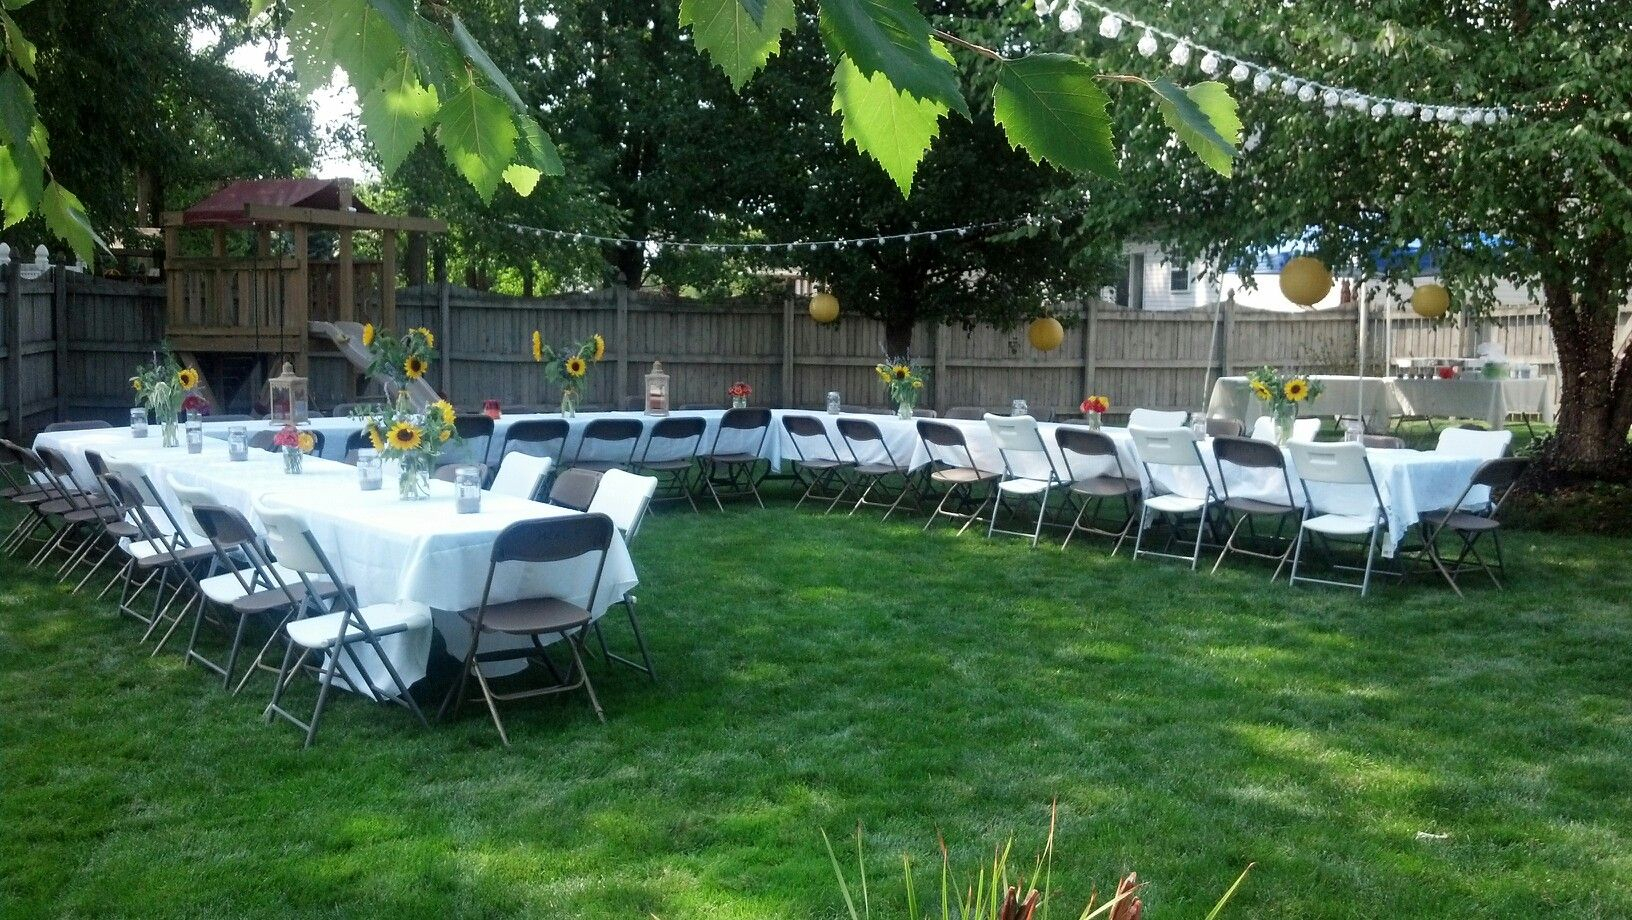 Graduation Party Ideas On A Budget Kids Graduation with Backyard Graduation Party Ideas